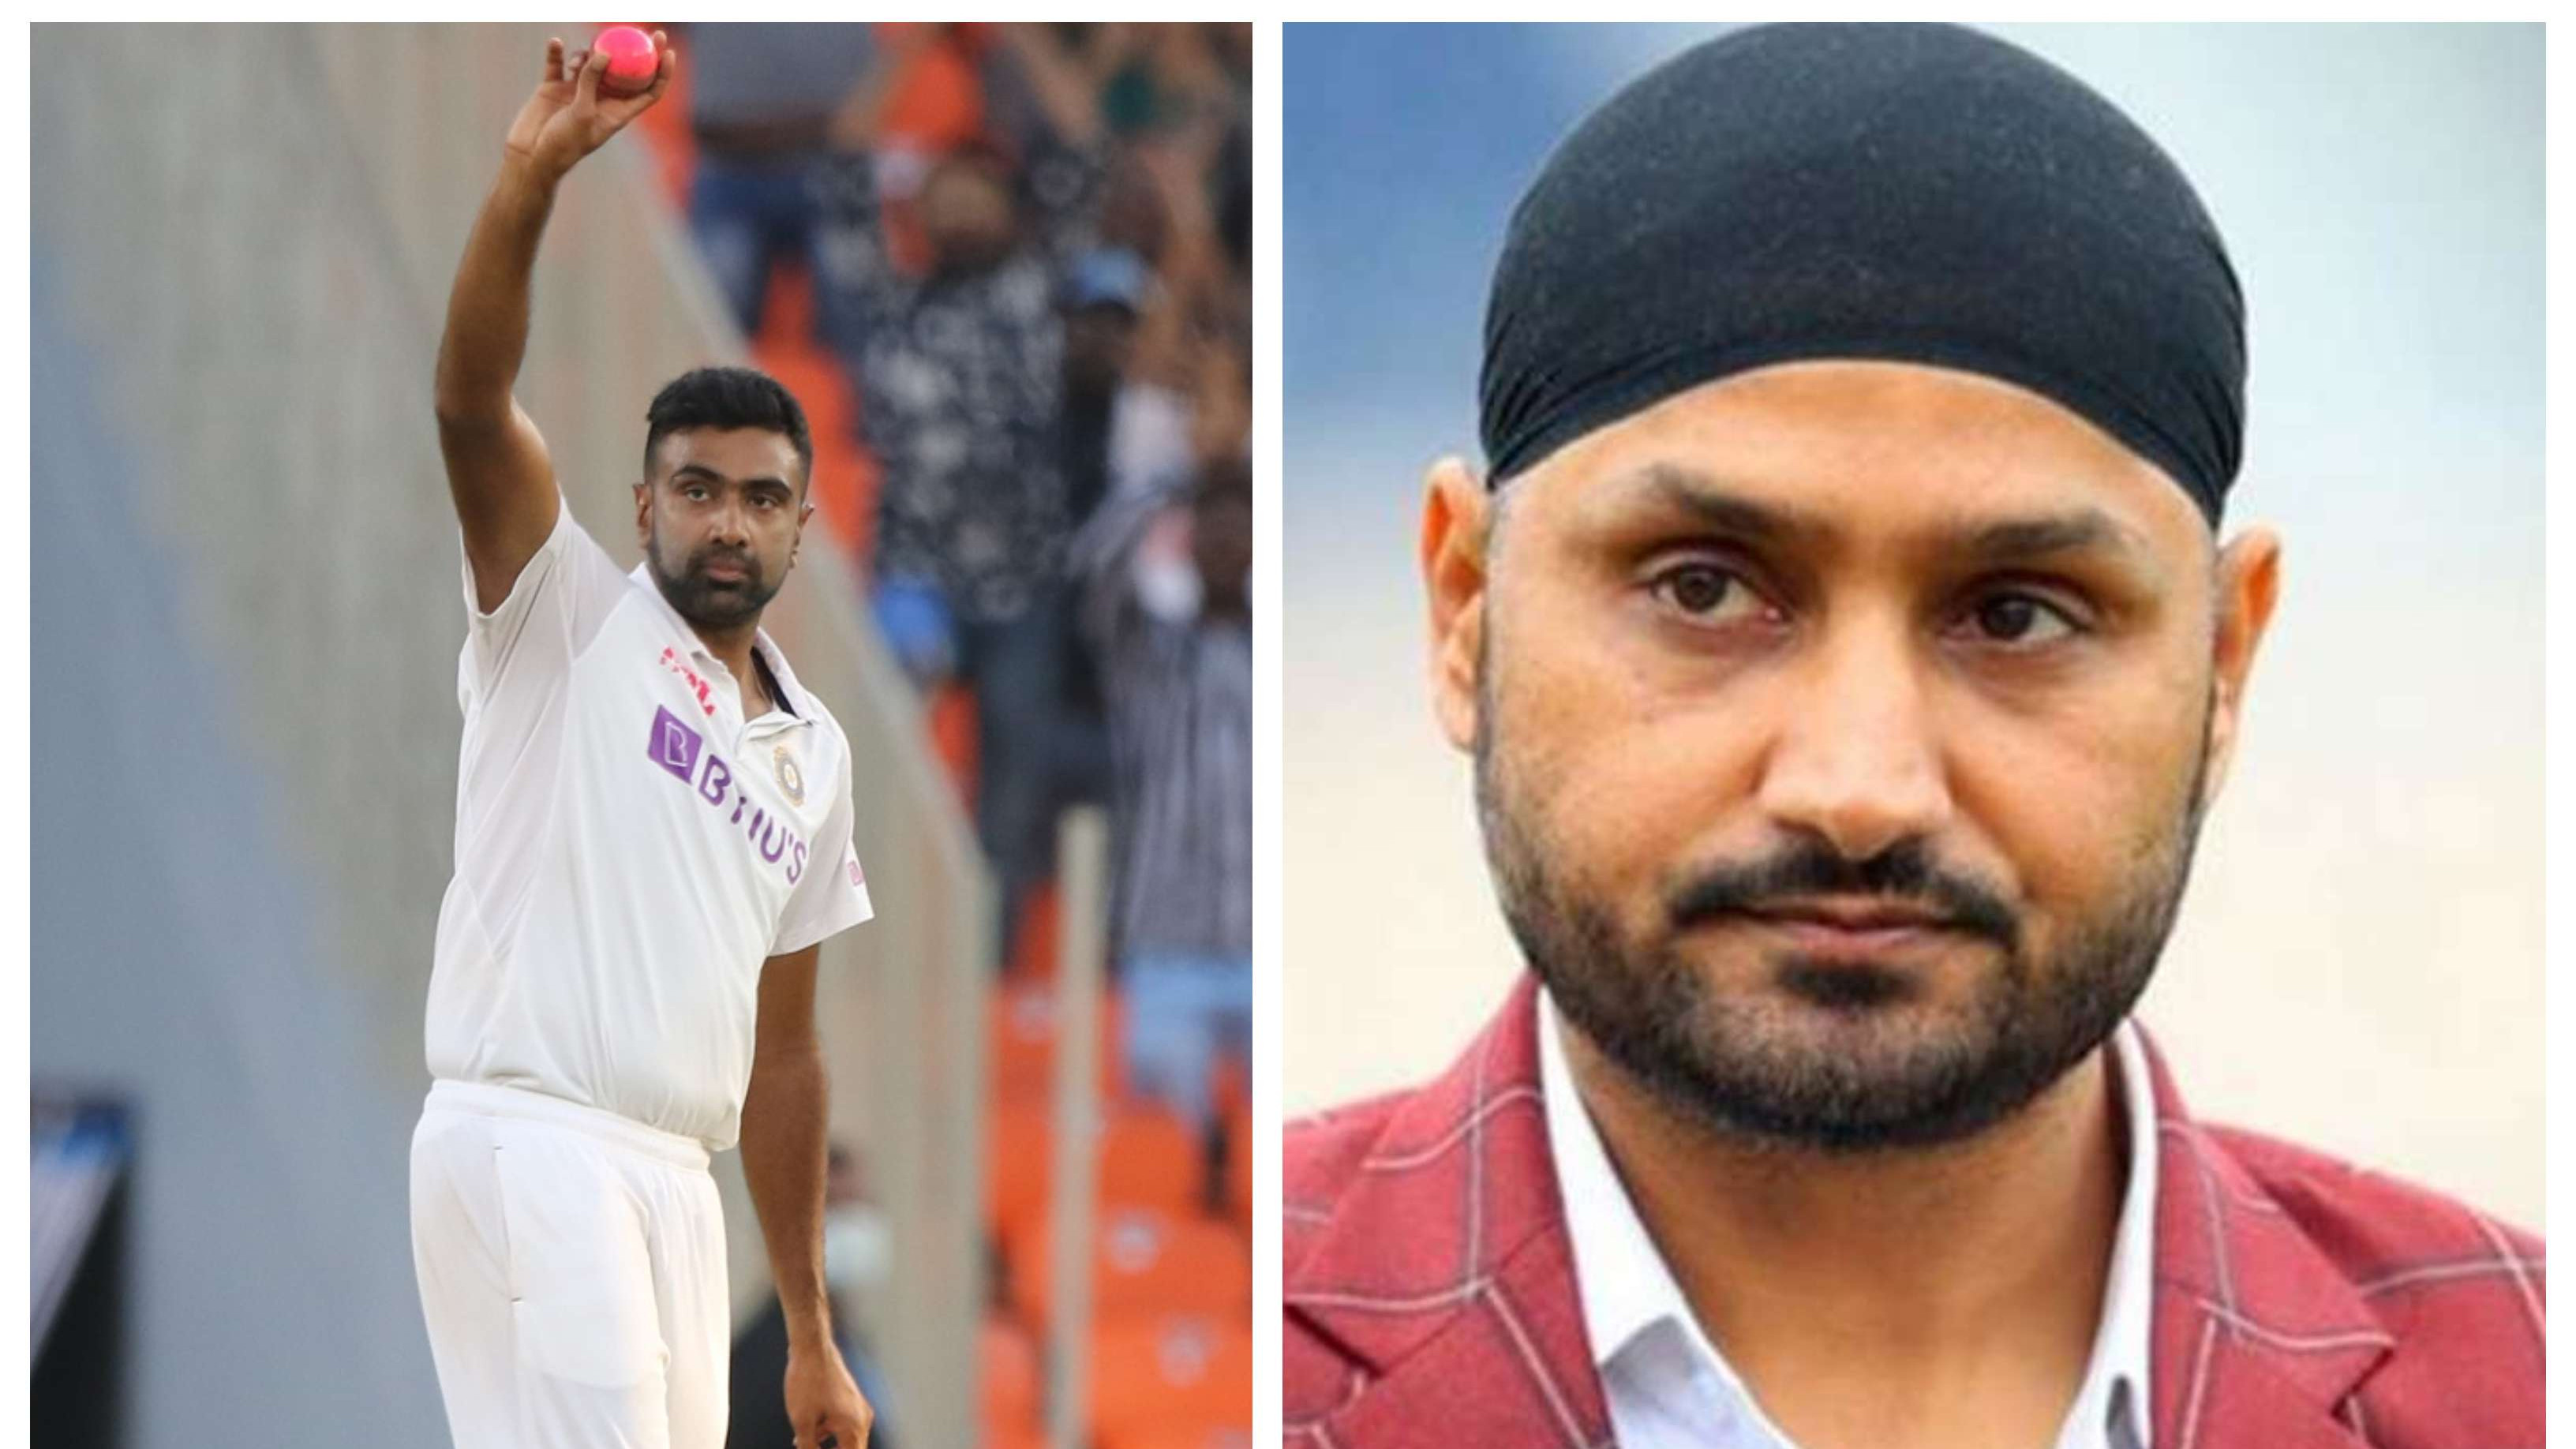 IND v ENG 2021: 'I will call him a legend when I meet him next time', Harbhajan Singh hails R Ashwin